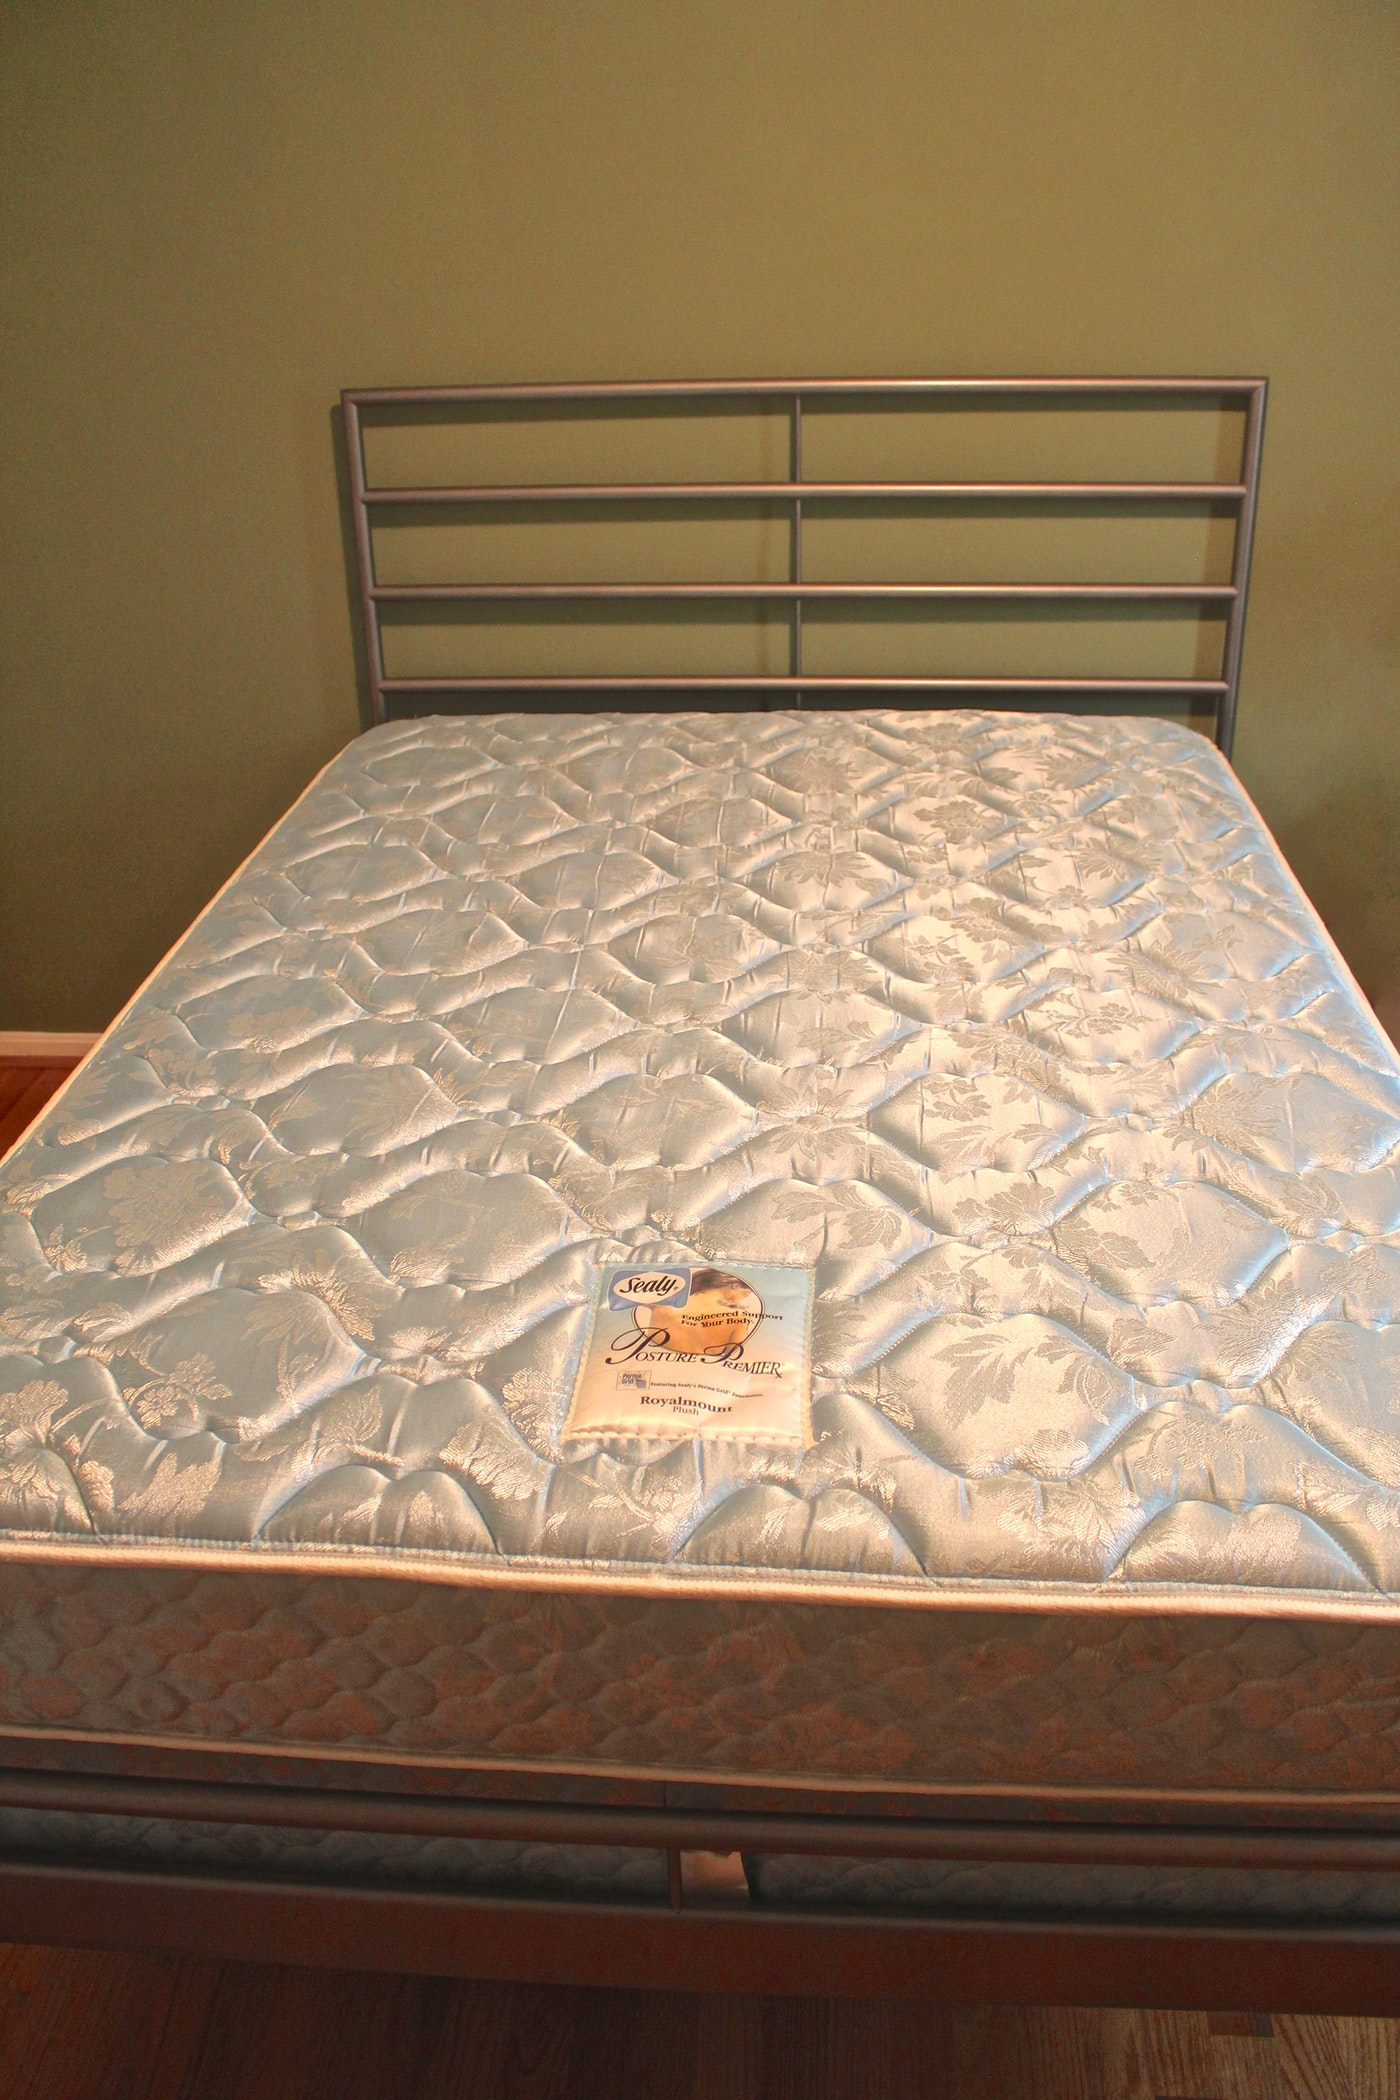 Ikea Heimdal Bed For Sale